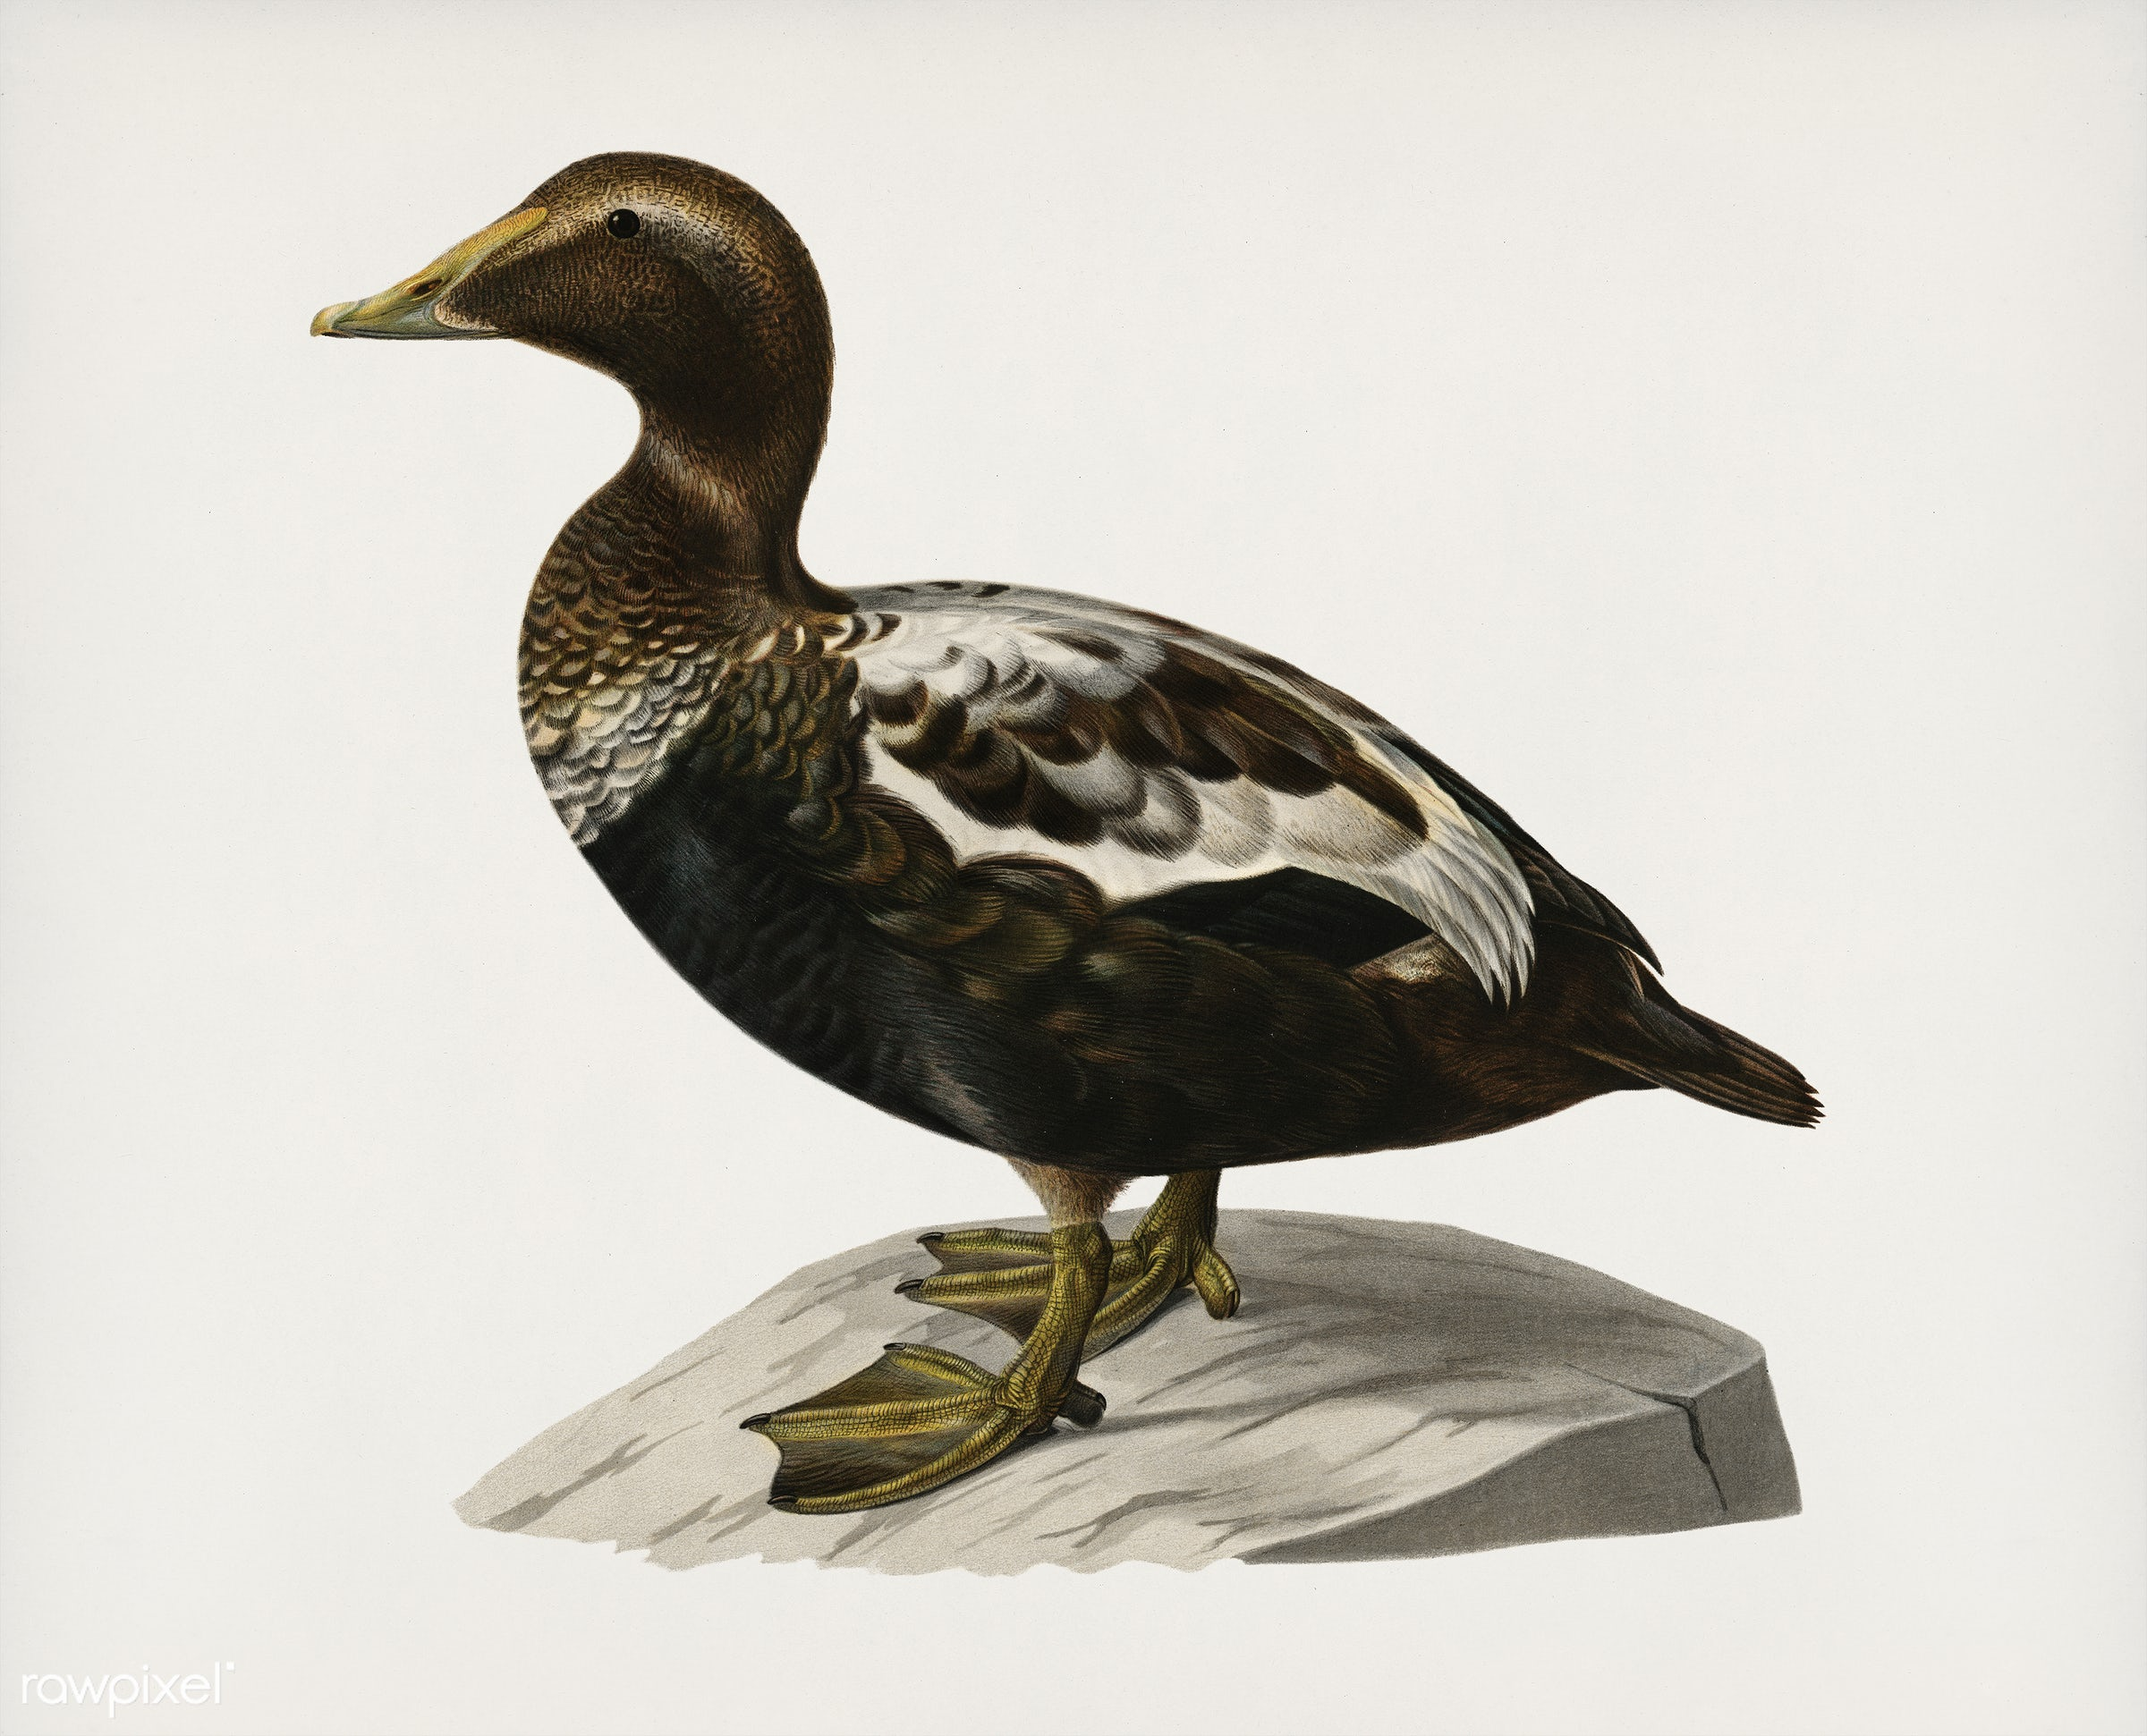 Eider ♂ (CORACIAS SOMATERIA MOLLISSIMA) illustrated by the von Wright brothers. Digitally enhanced from our own 1929 folio...